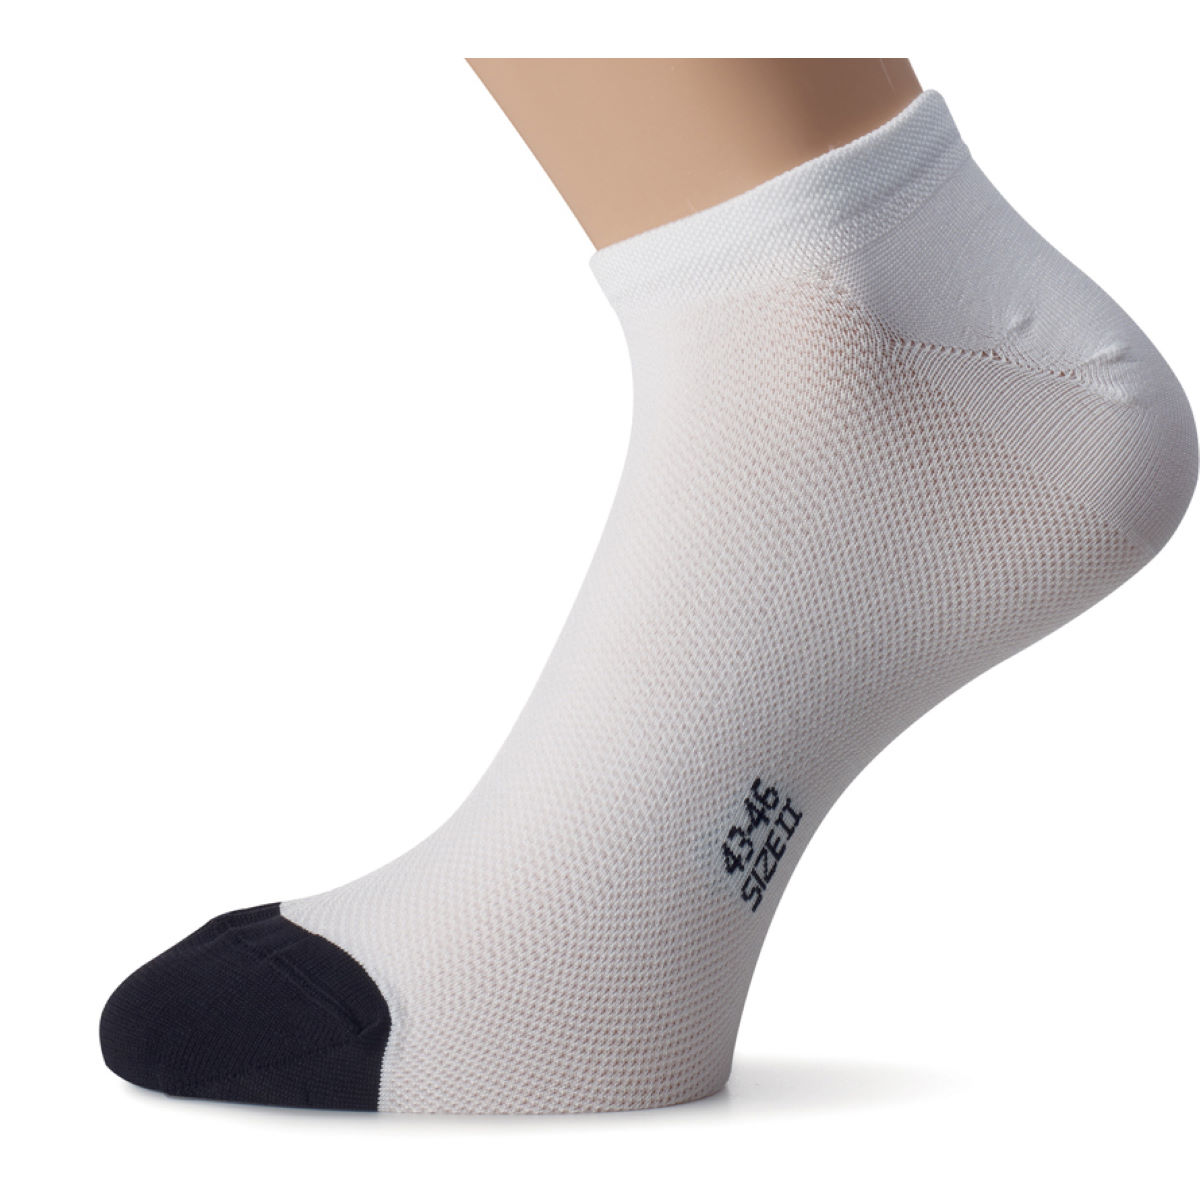 Assos superleggerasocks evo8 internal holy white ss17 p13 60 655 57 0